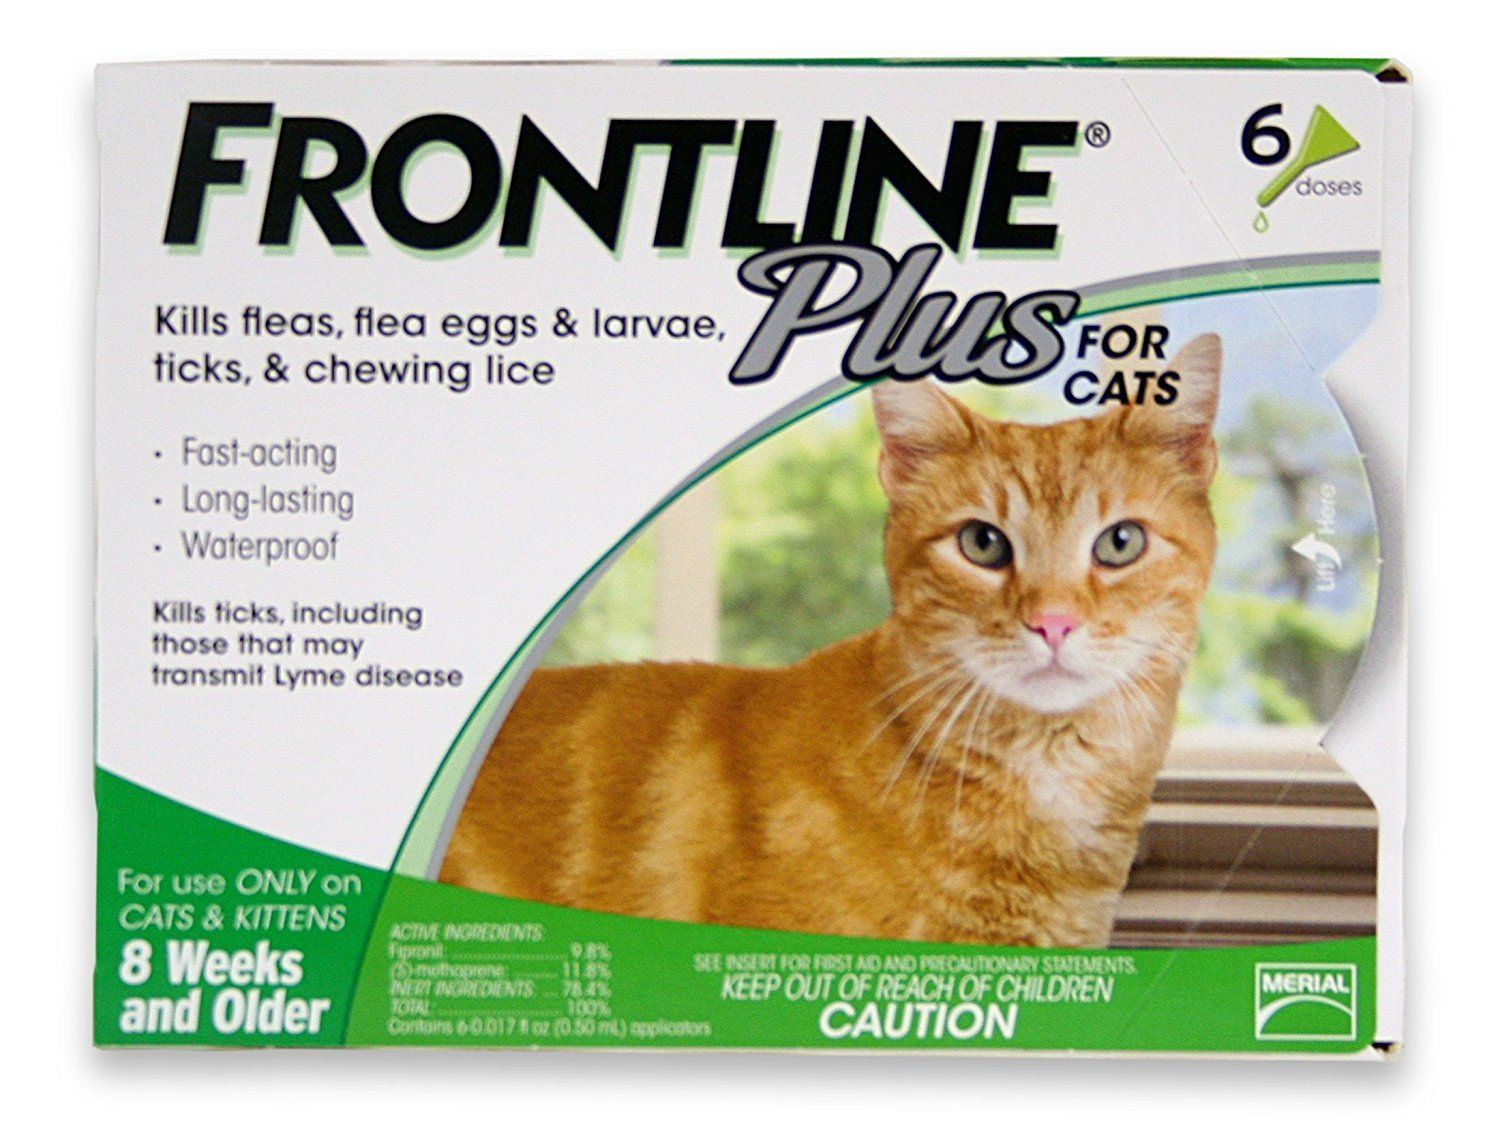 Merial Frontline Plus Flea And Tick Control For Cats And Kittens 6 Doses Read More Reviews Of T Frontline Plus For Cats Tick Treatment For Cats Cat Medicine